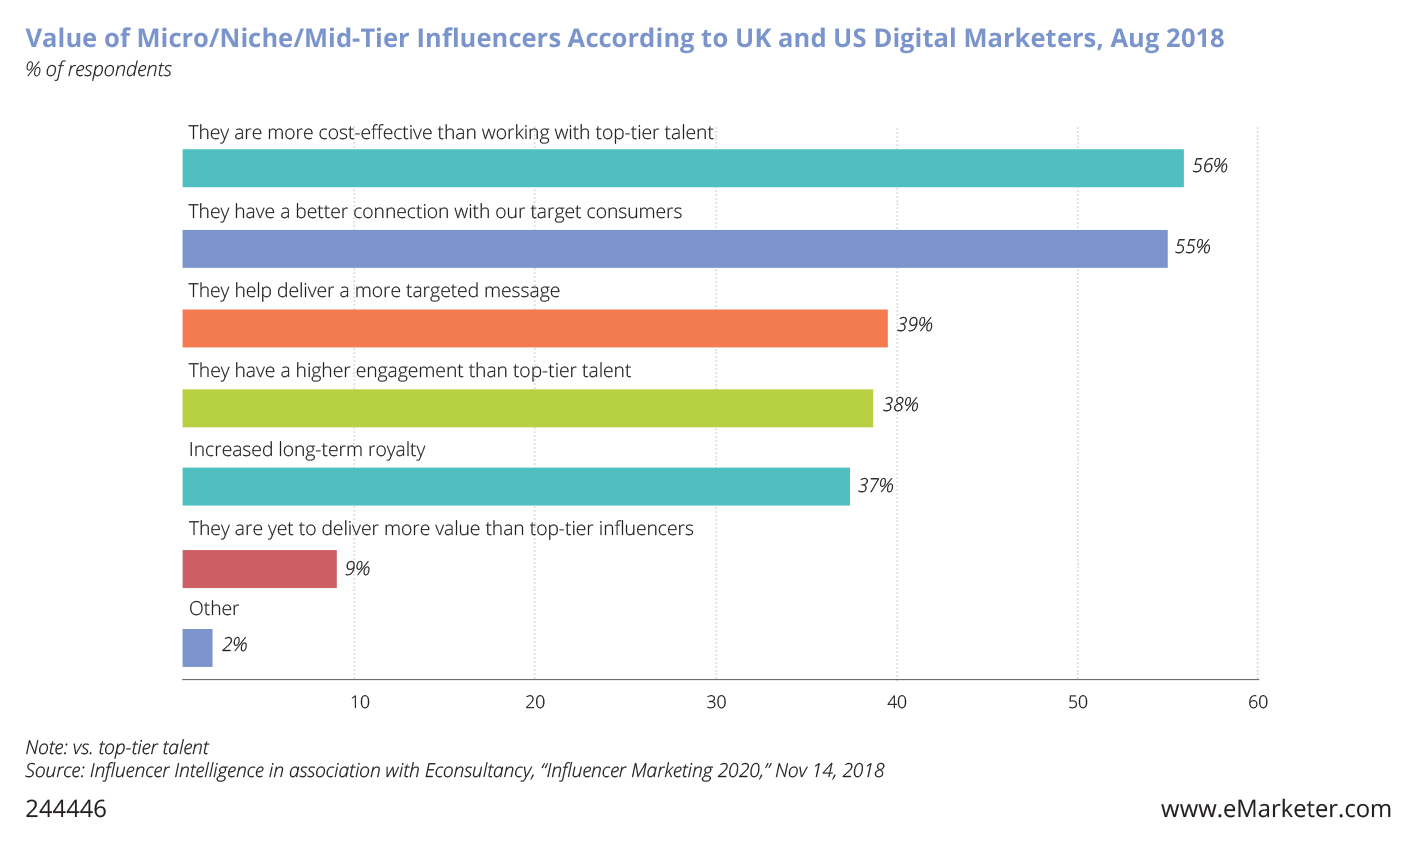 Chart: Value of micro/niche/mid-tier social media influencers according to the UK and US digital marketers.